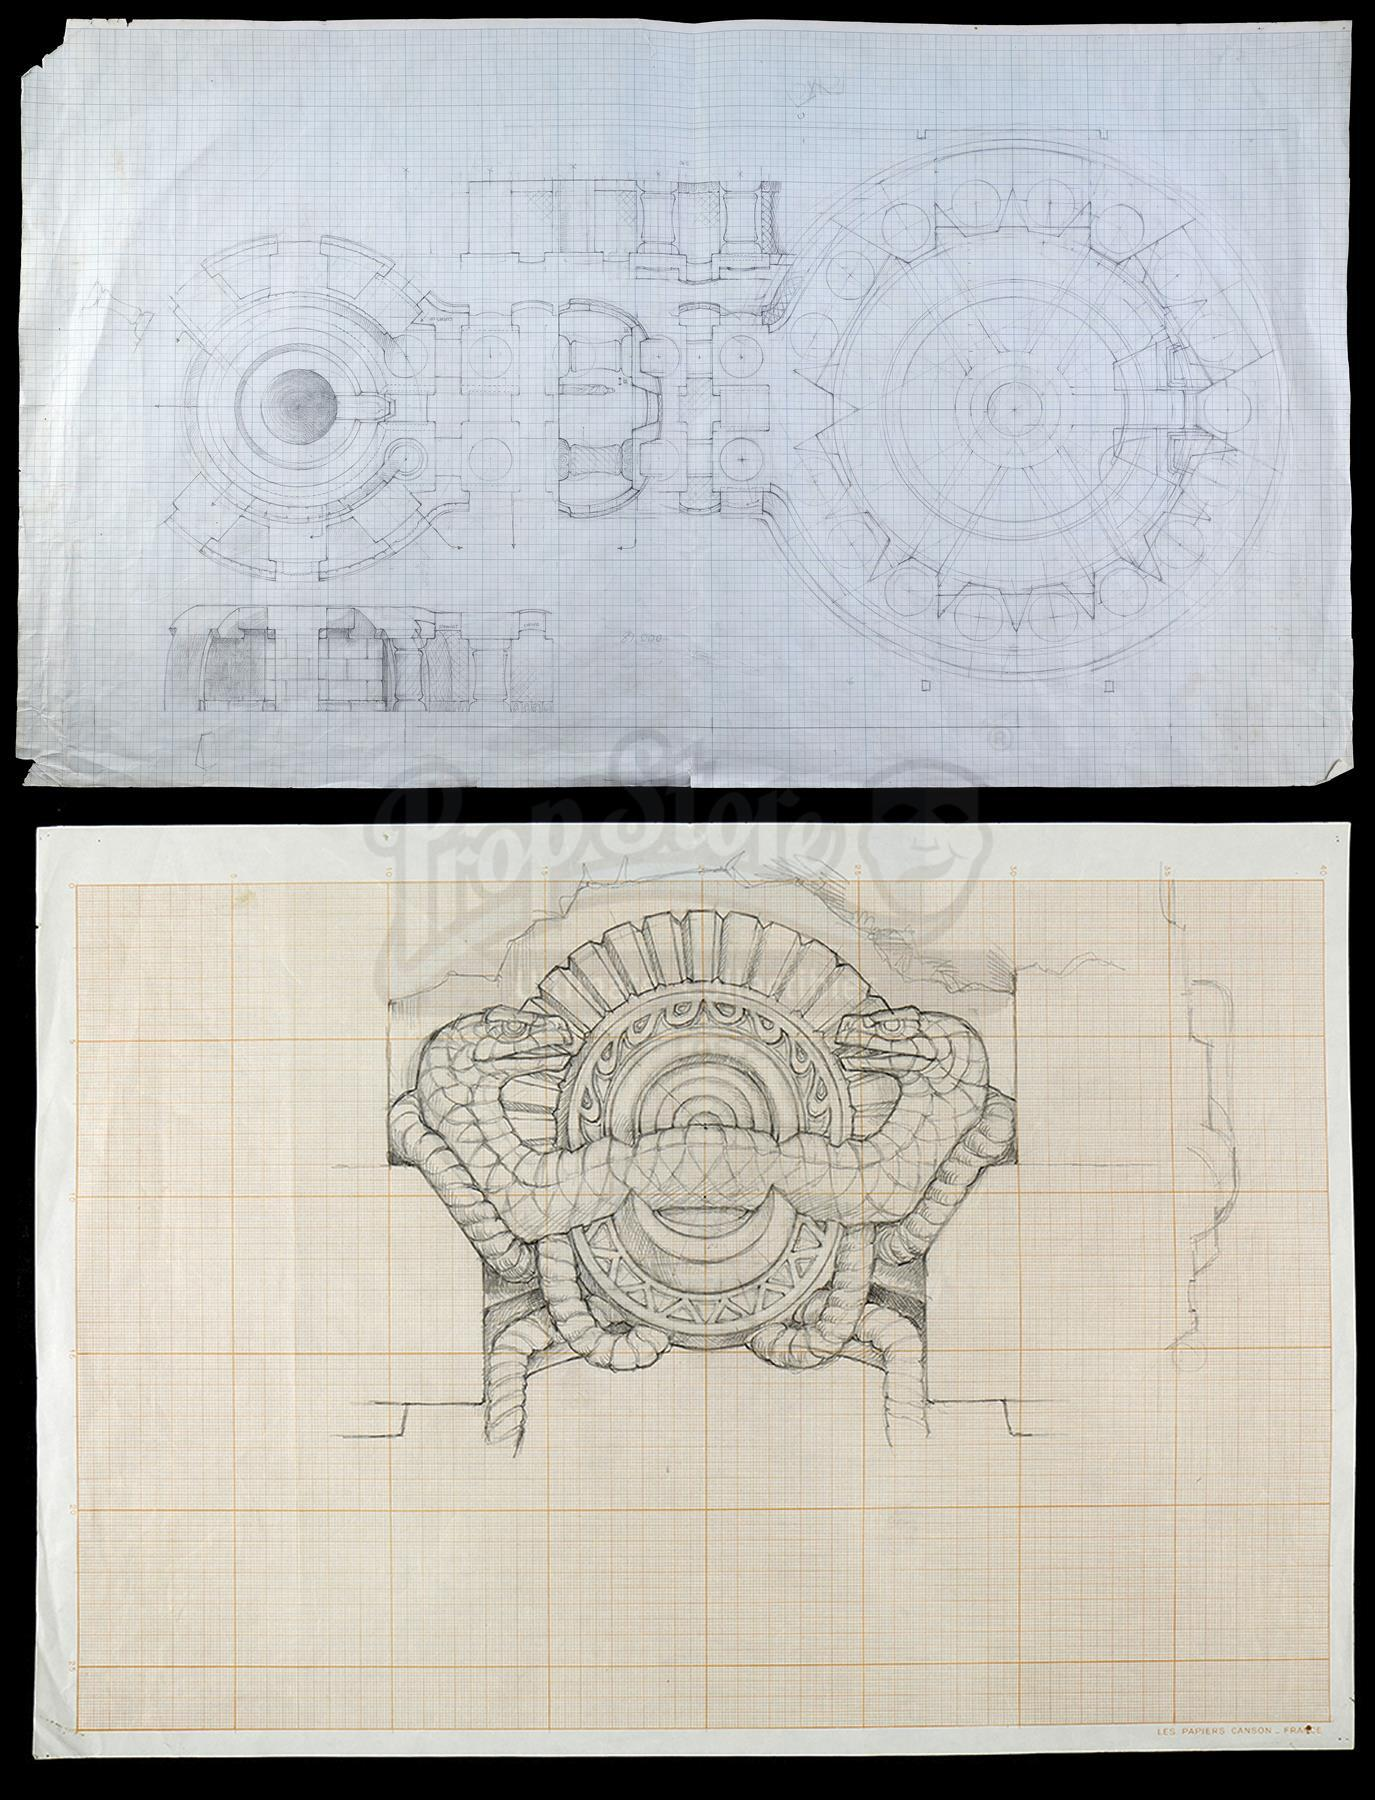 Lot # 588: CONAN THE BARBARIAN - Hand-Drawn Ron Cobb Temple of Set Concept Sketches